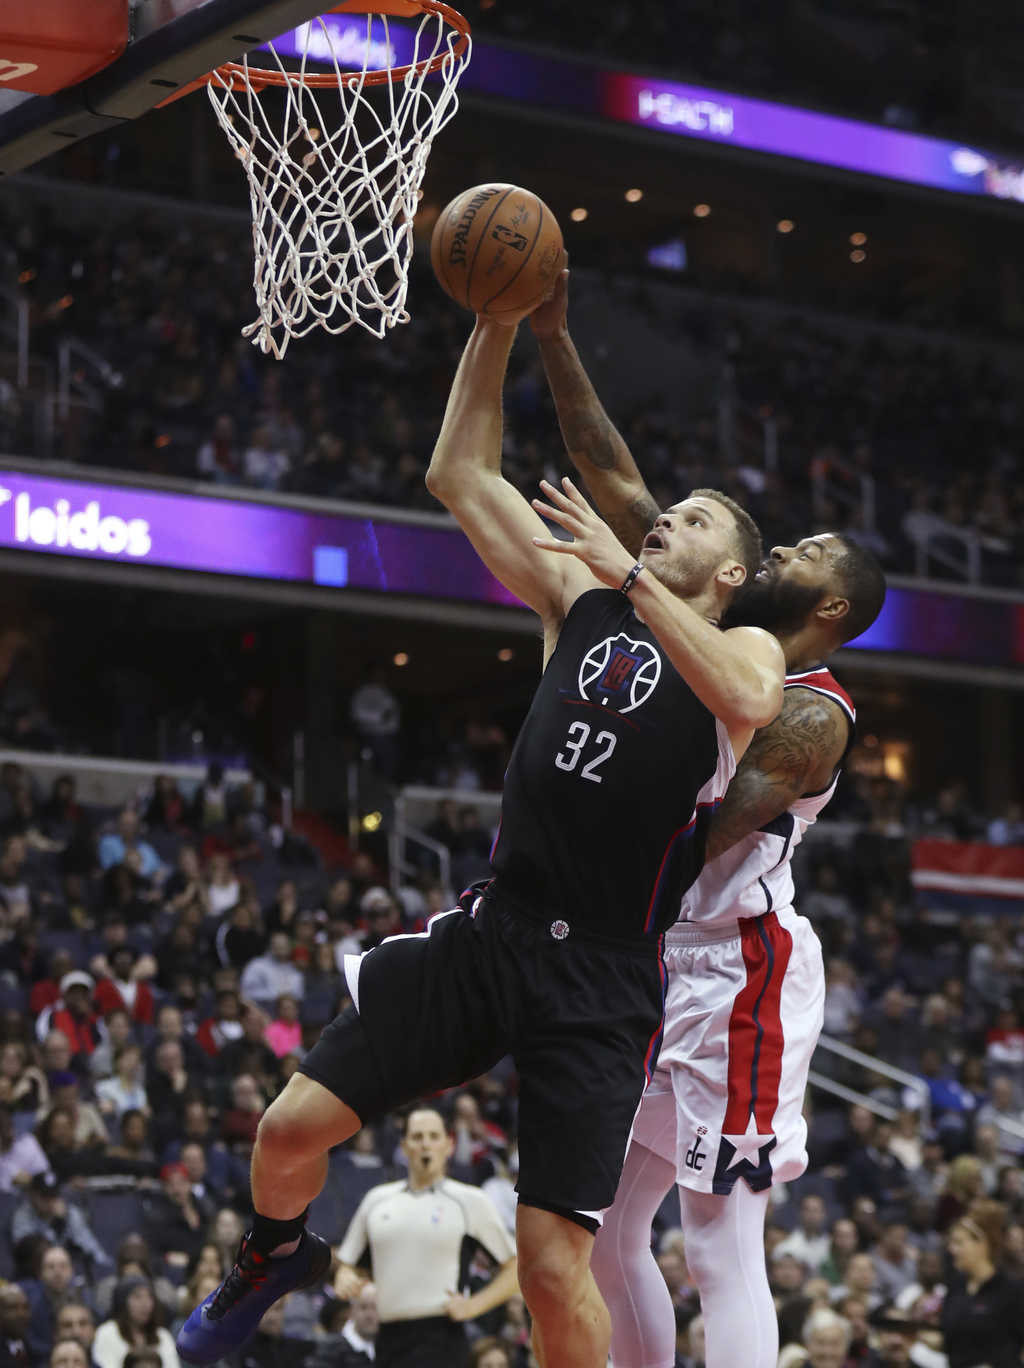 Los Angeles Clippers forward Blake Griffin (32) shoots and is fouled by Washington Wizards forward Markieff Morris, right, during the f...